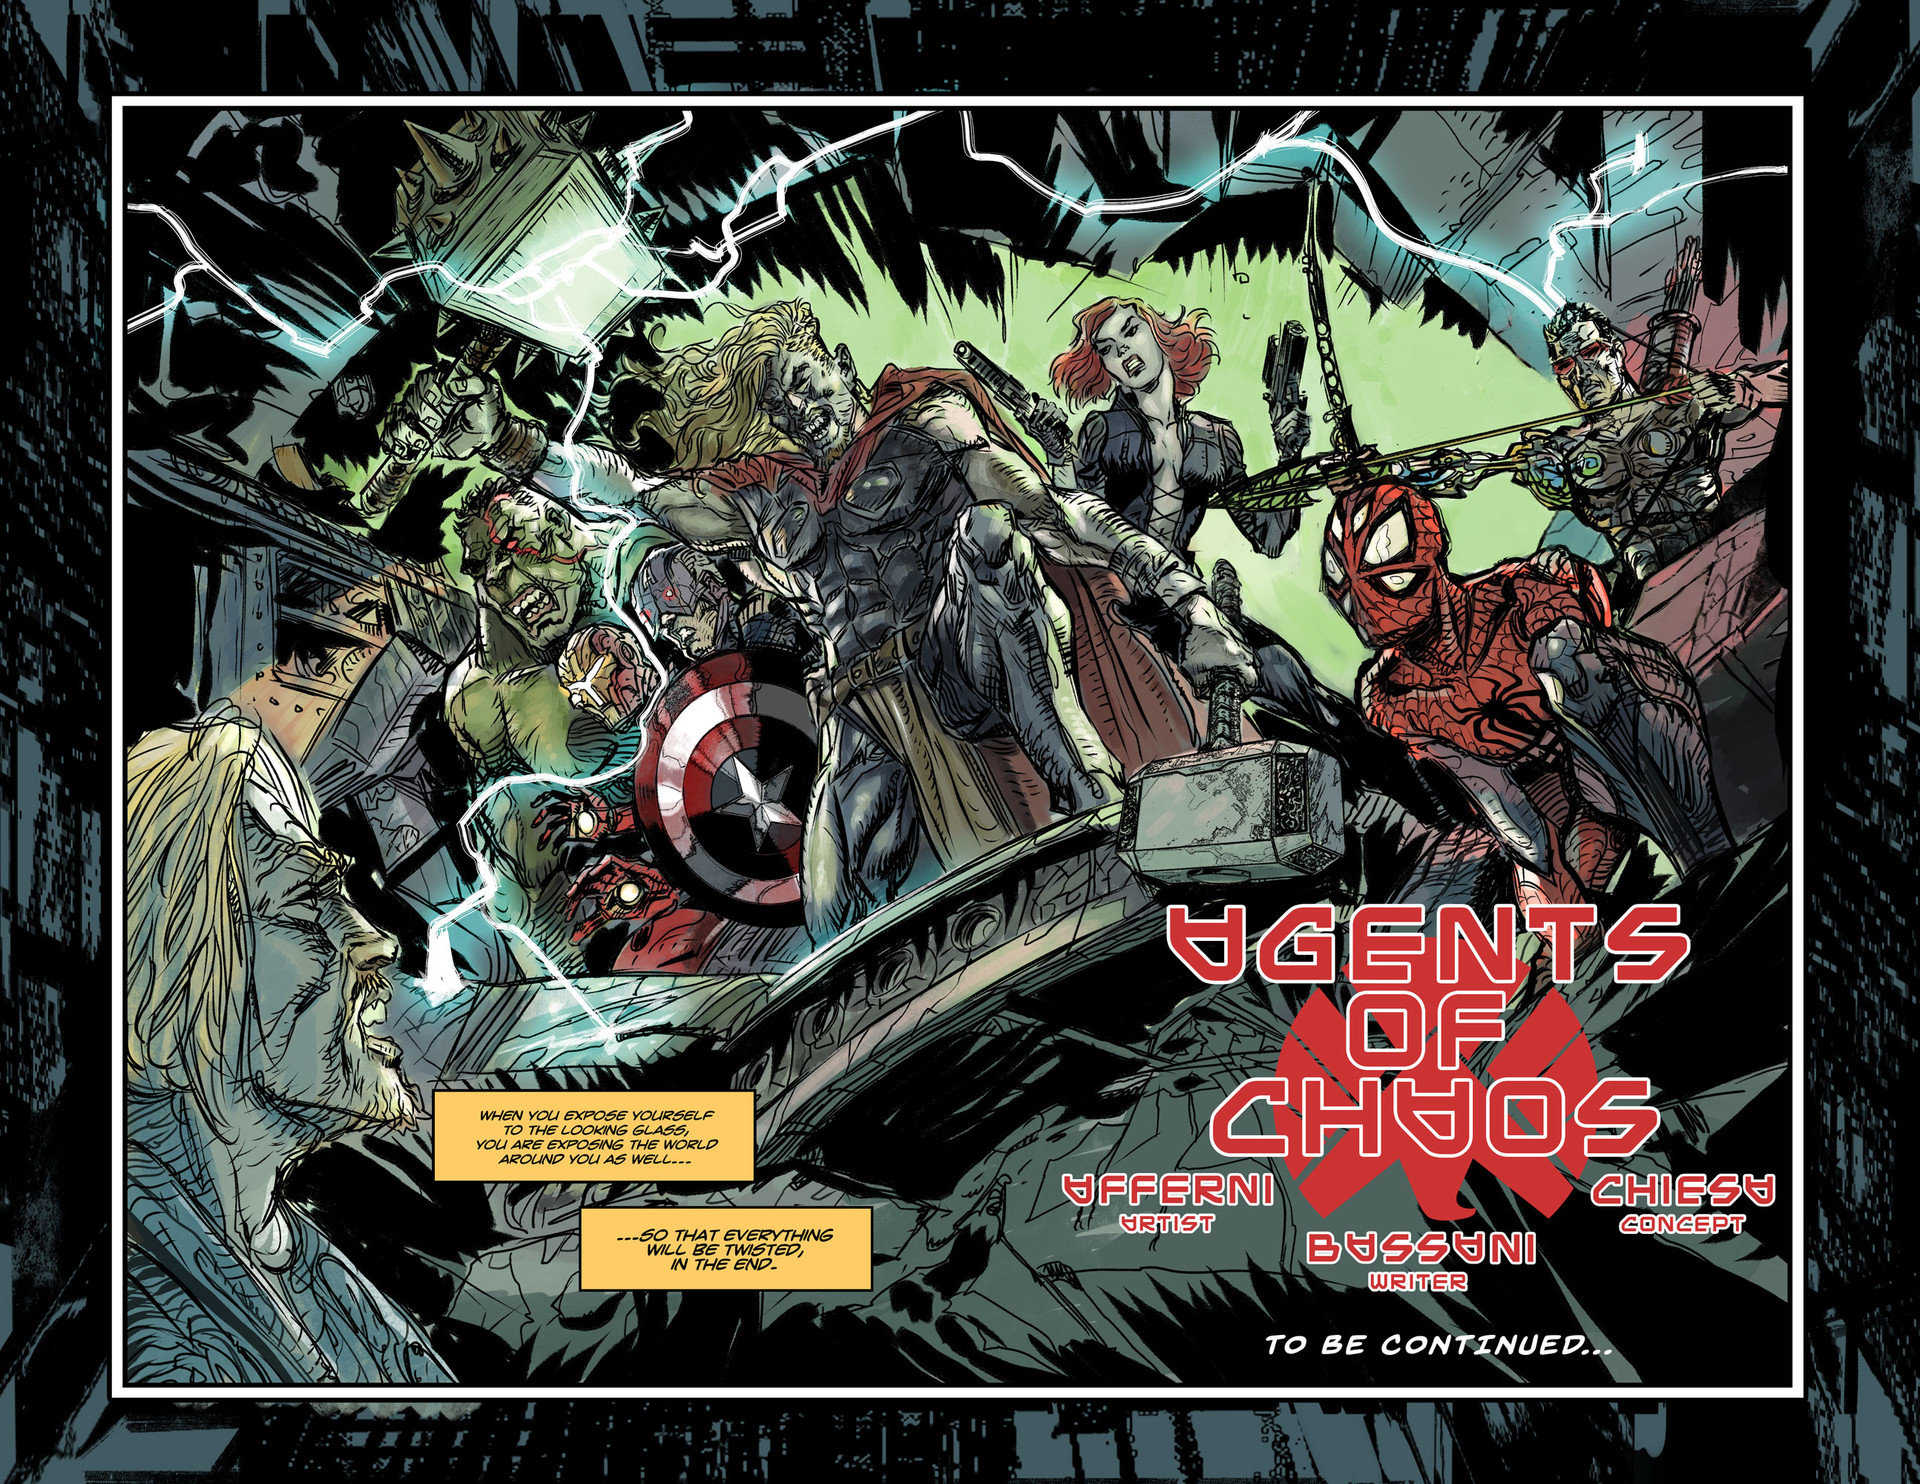 Page 6 - 7 double splash page